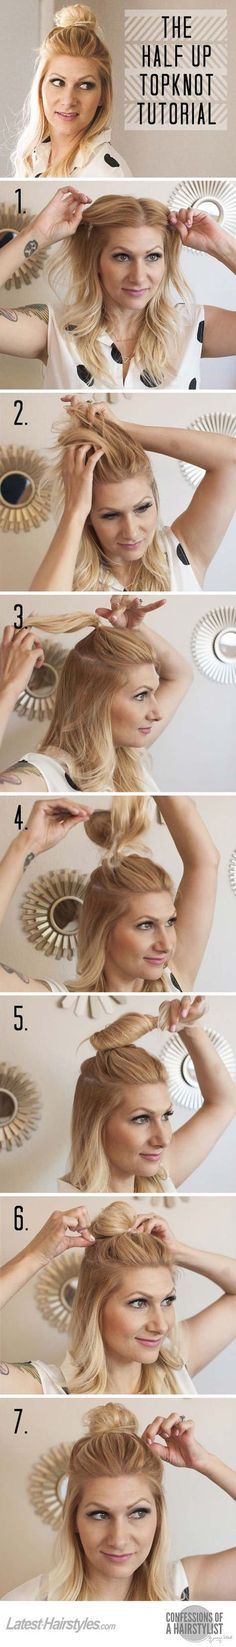 Cool and Easy DIY Hairstyles - The Half Up Top Knot - Quick and Easy Ideas for Back to School Styles for Medium, Short and Long Hair - Fun Tips and Best Step by Step Tutorials for Teens, Prom, Weddings, Special Occasions and Work. Up dos, Braids, Top Knots and Buns, Super Summer Looks diyprojectsfortee...